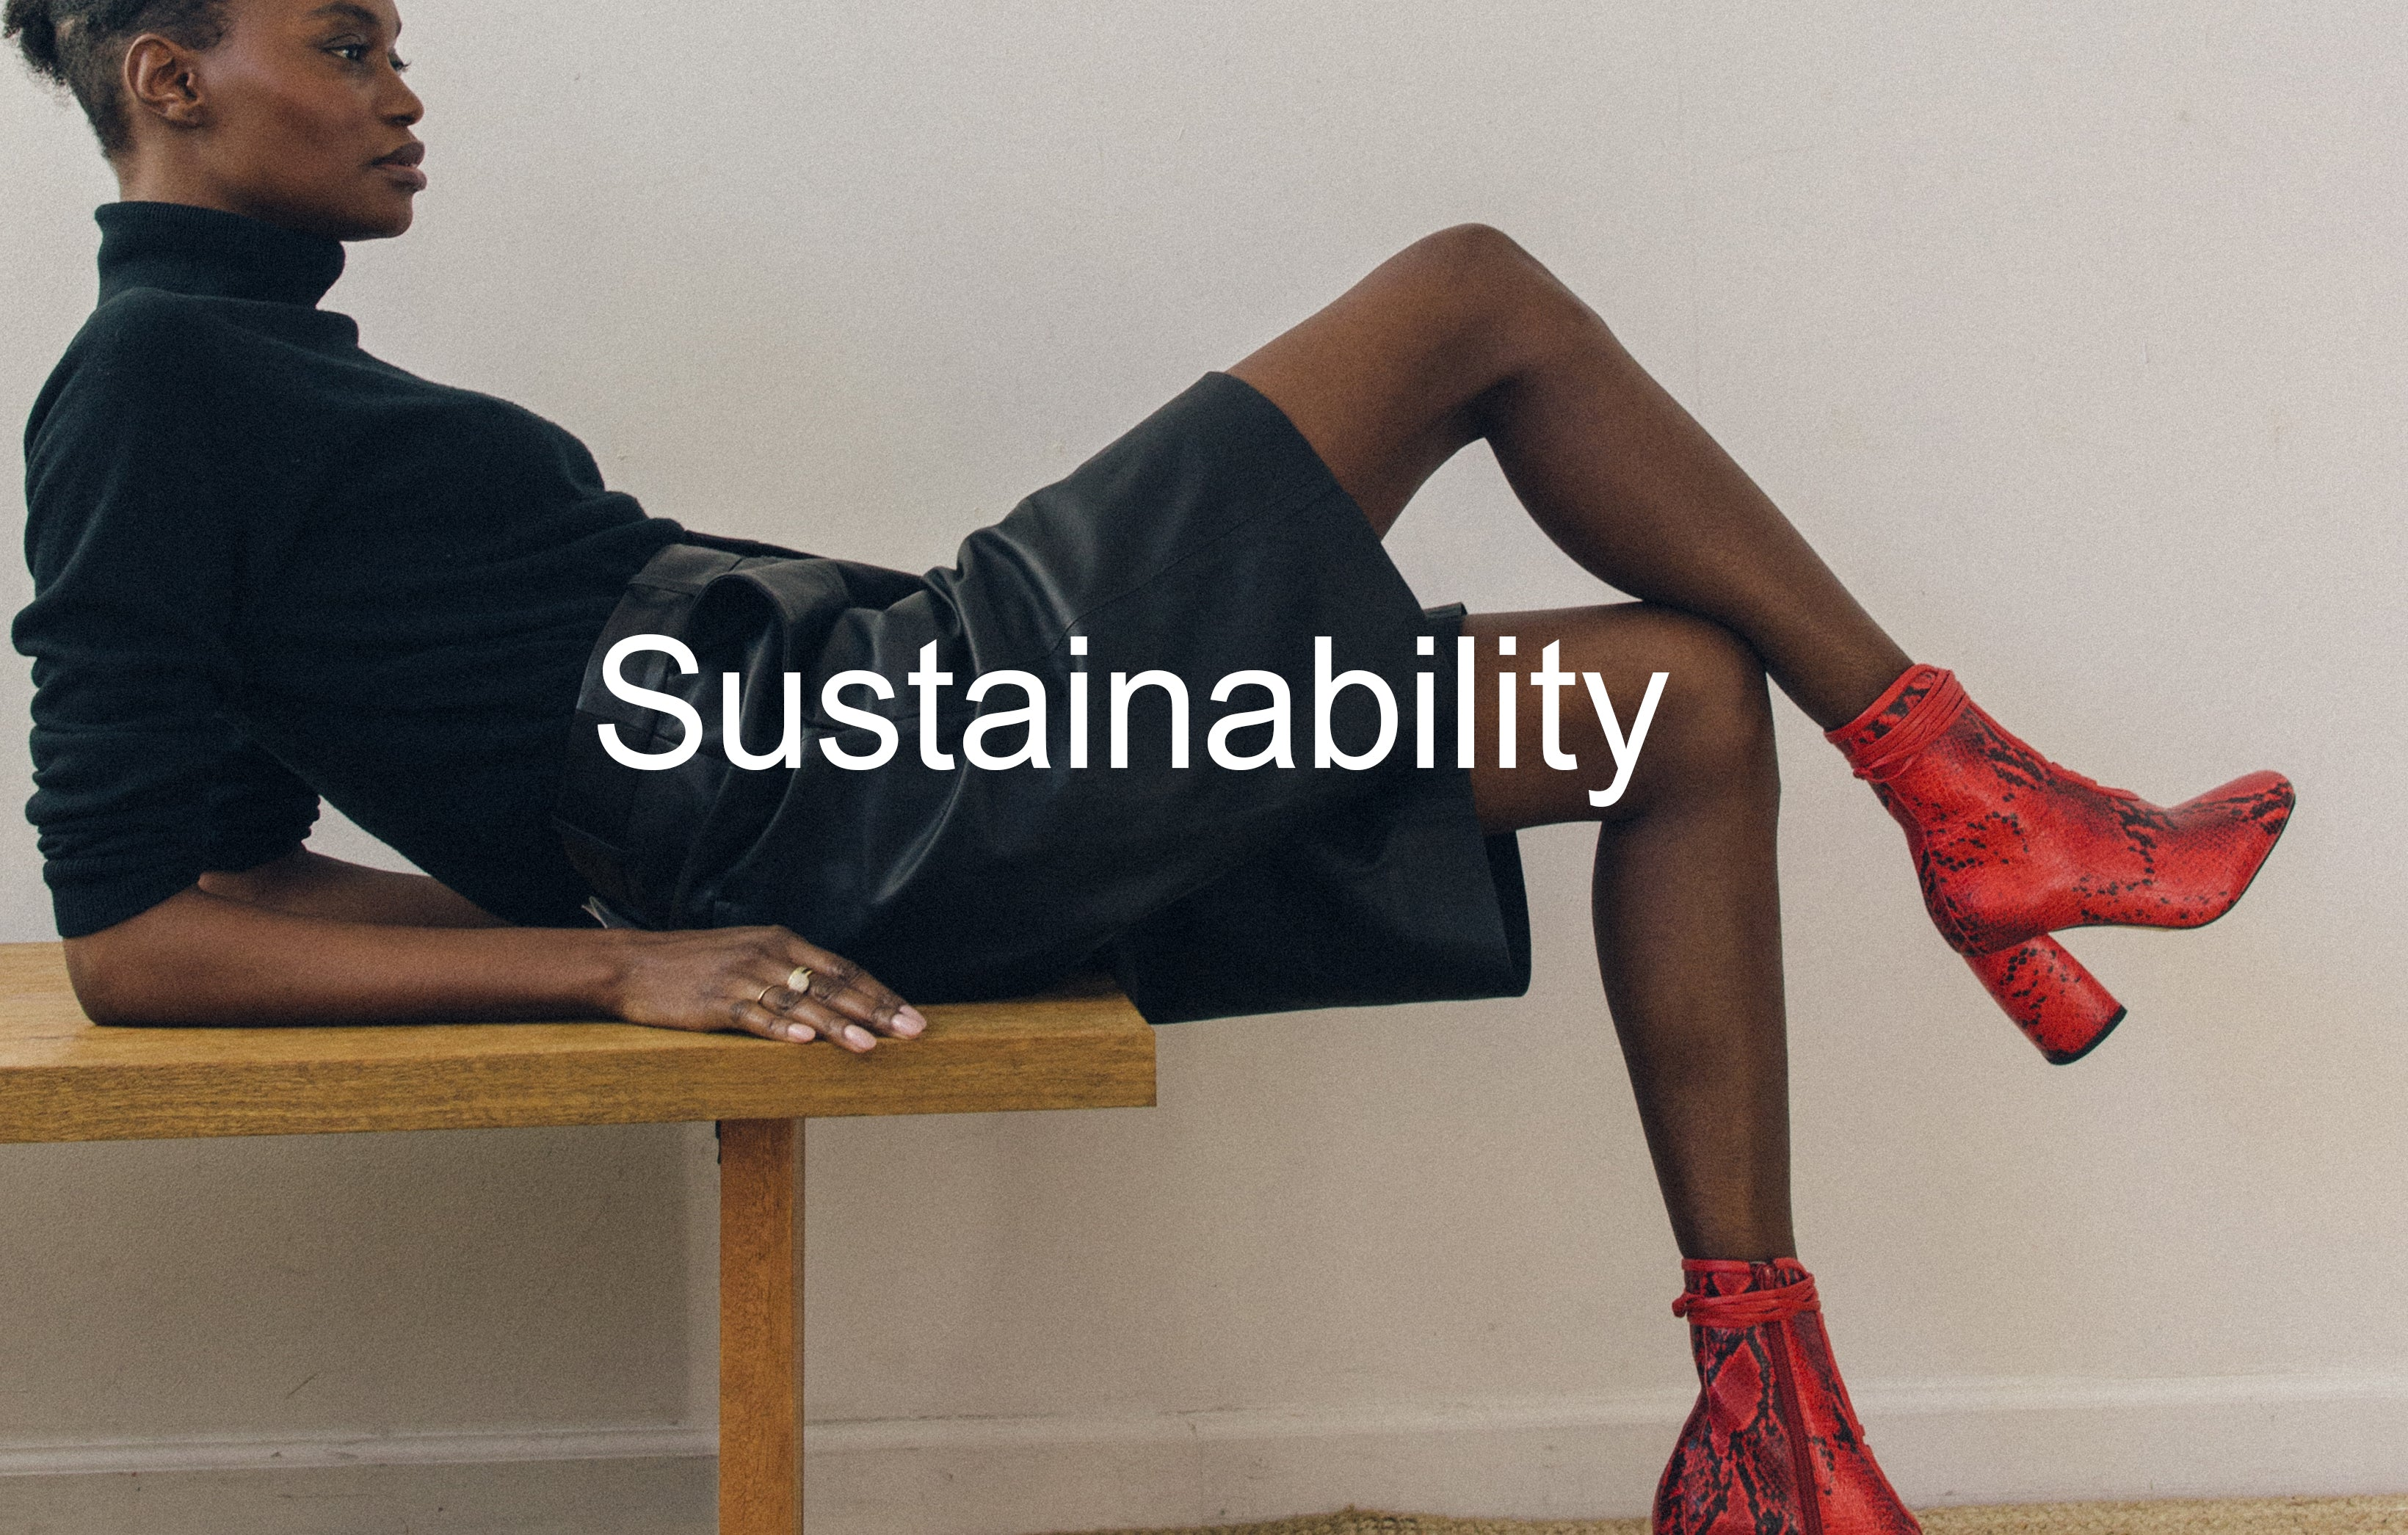 Shop sustainable fashion shoes from Daniella Shevel